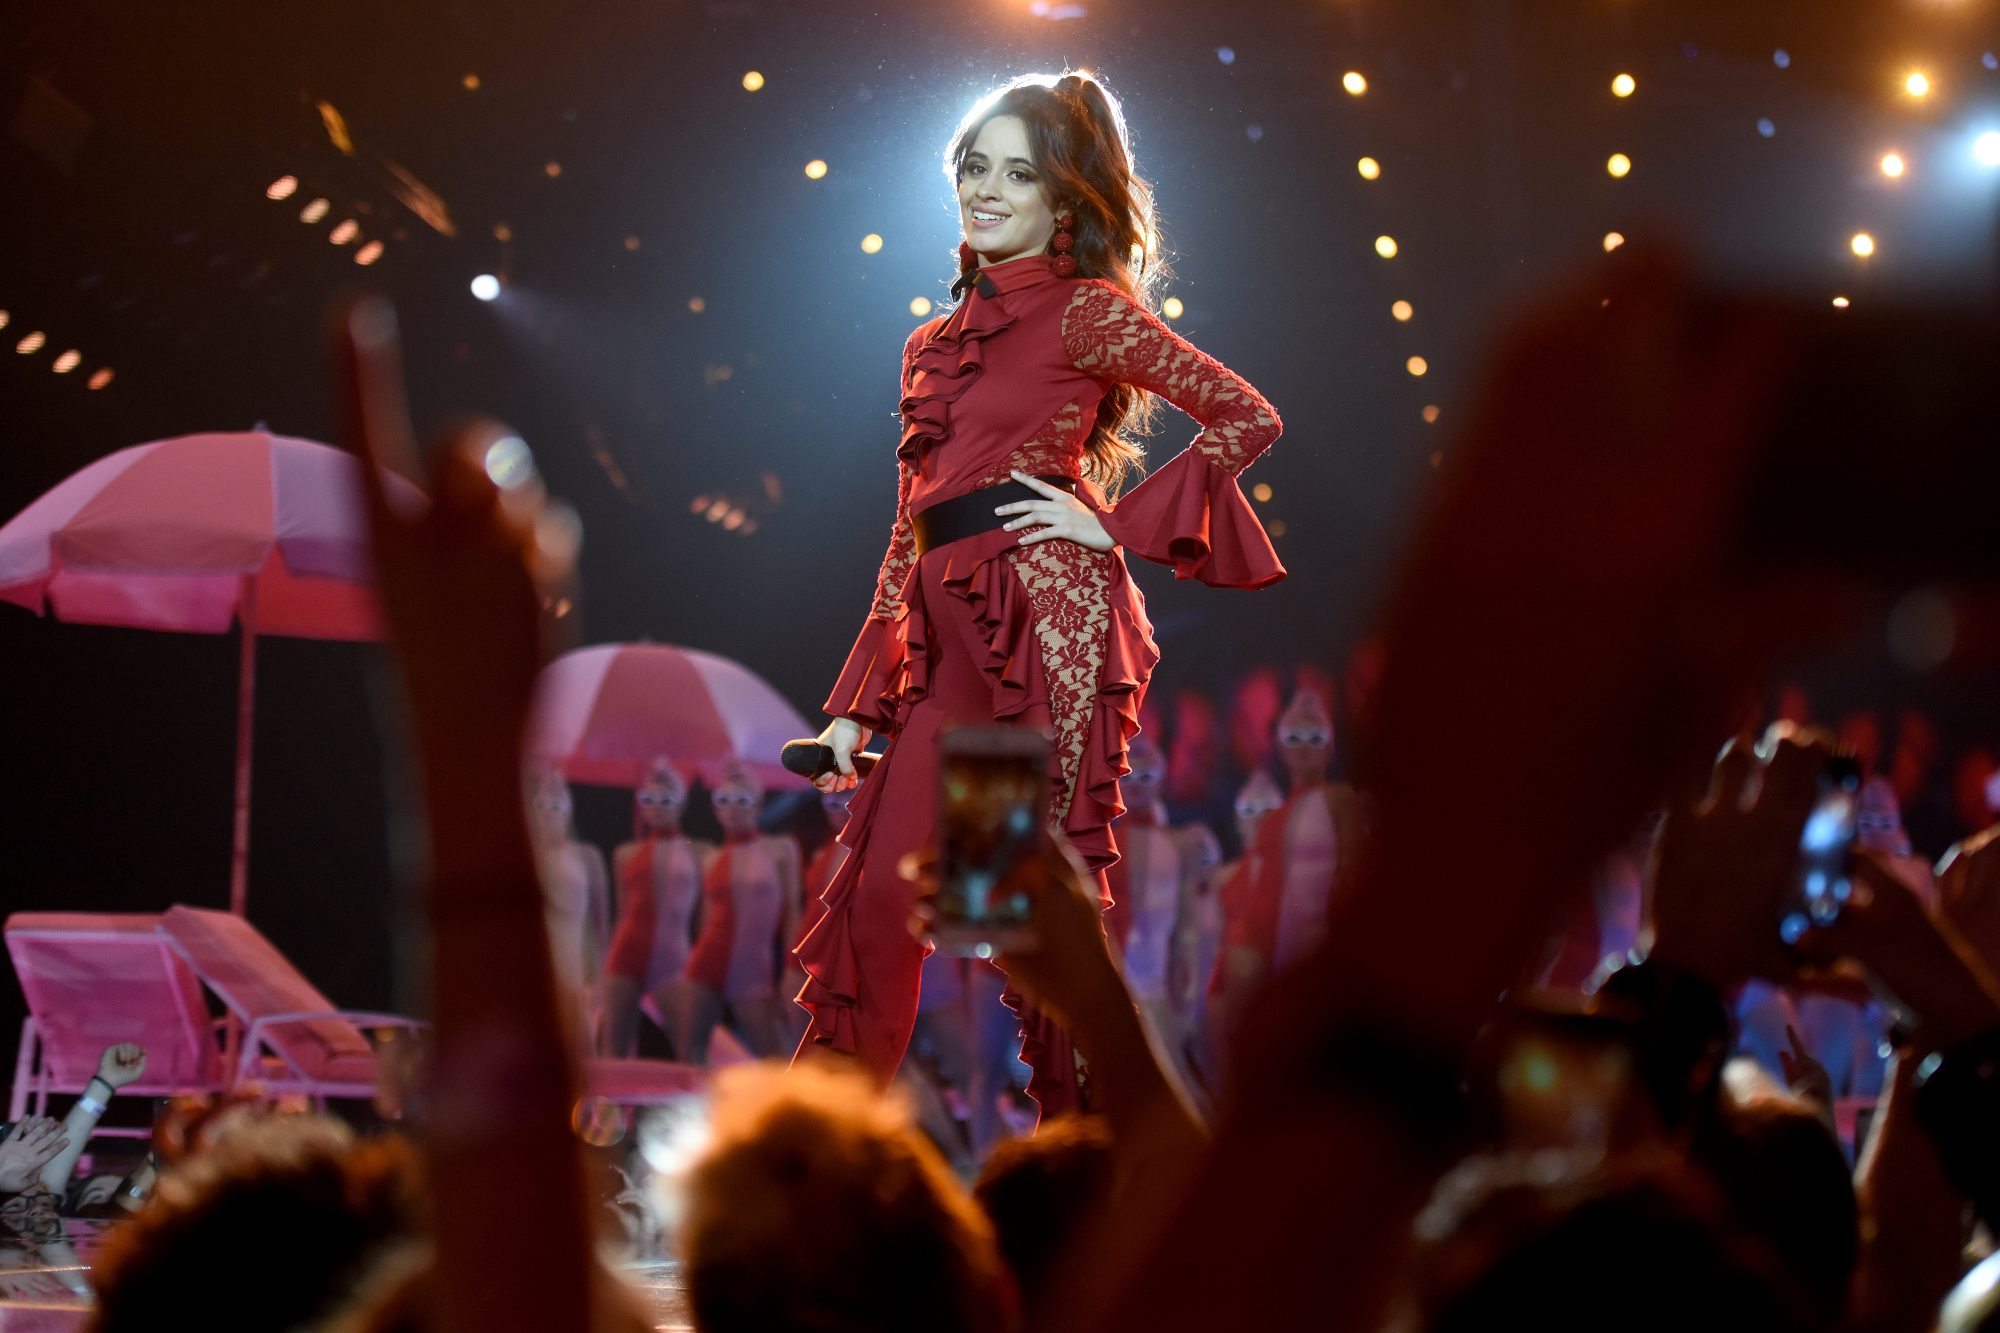 CAMILA CABELLO PROVES HER POP PROWESS